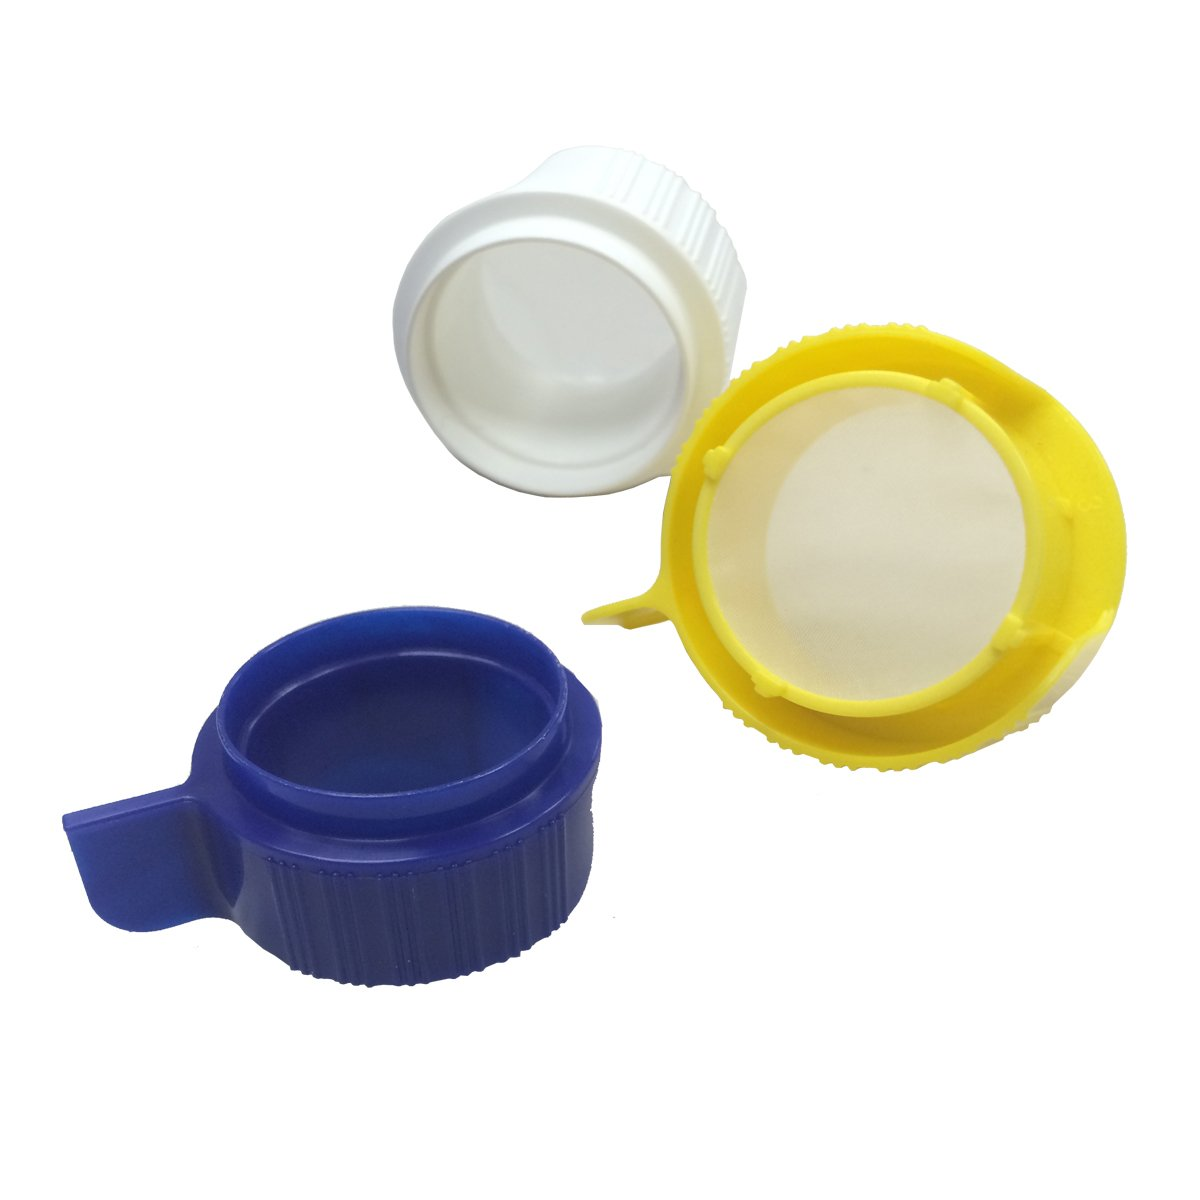 B075VC19RT 40µm cell strainer, sterile, individually wrapped, w/ 1 reducing adapter, 50/PK 511M5sdBNhL._SL1200_